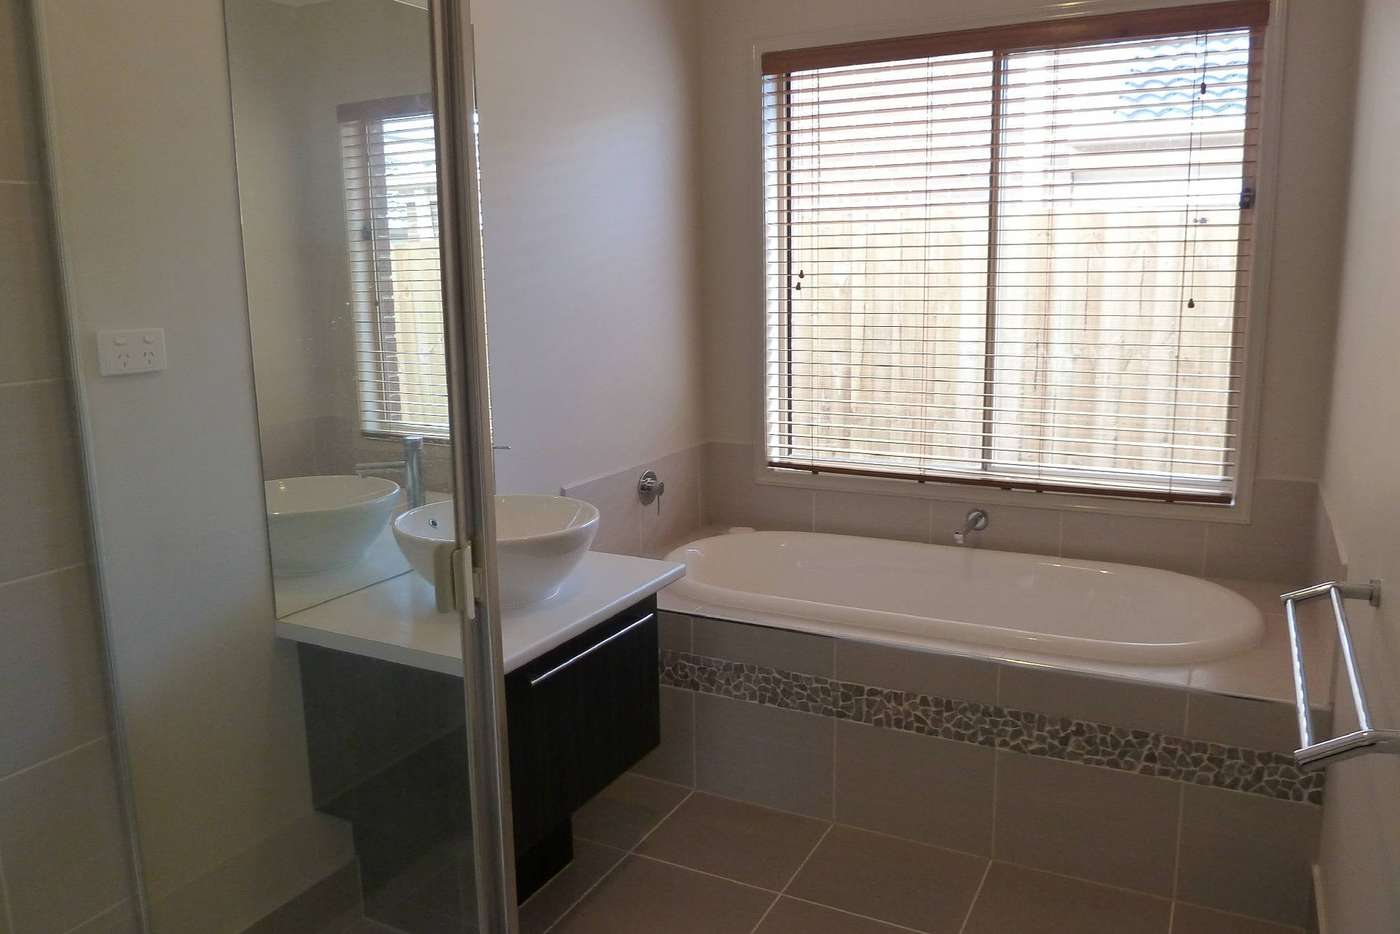 Seventh view of Homely house listing, 409 Mountain Hwy, Wantirna VIC 3152